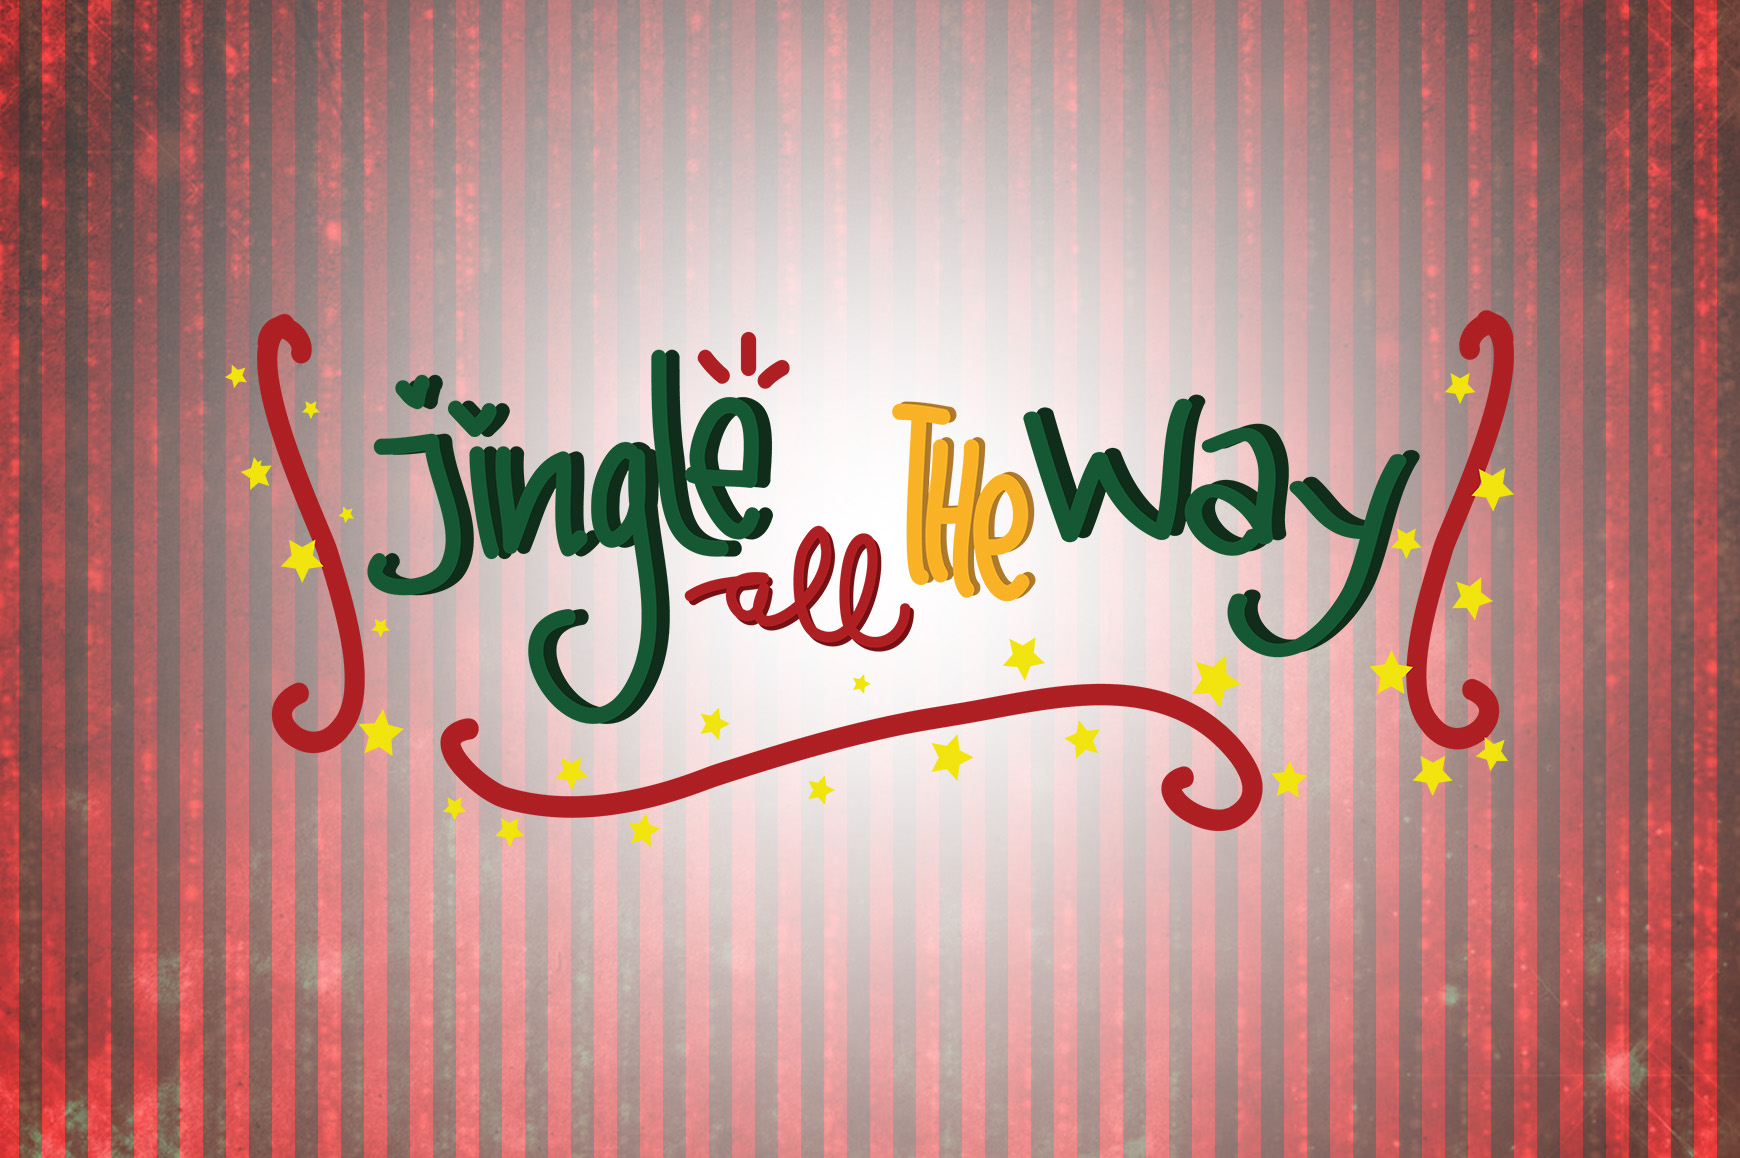 Jingle All The Way Christmas Quotes Graphic By Wienscollection